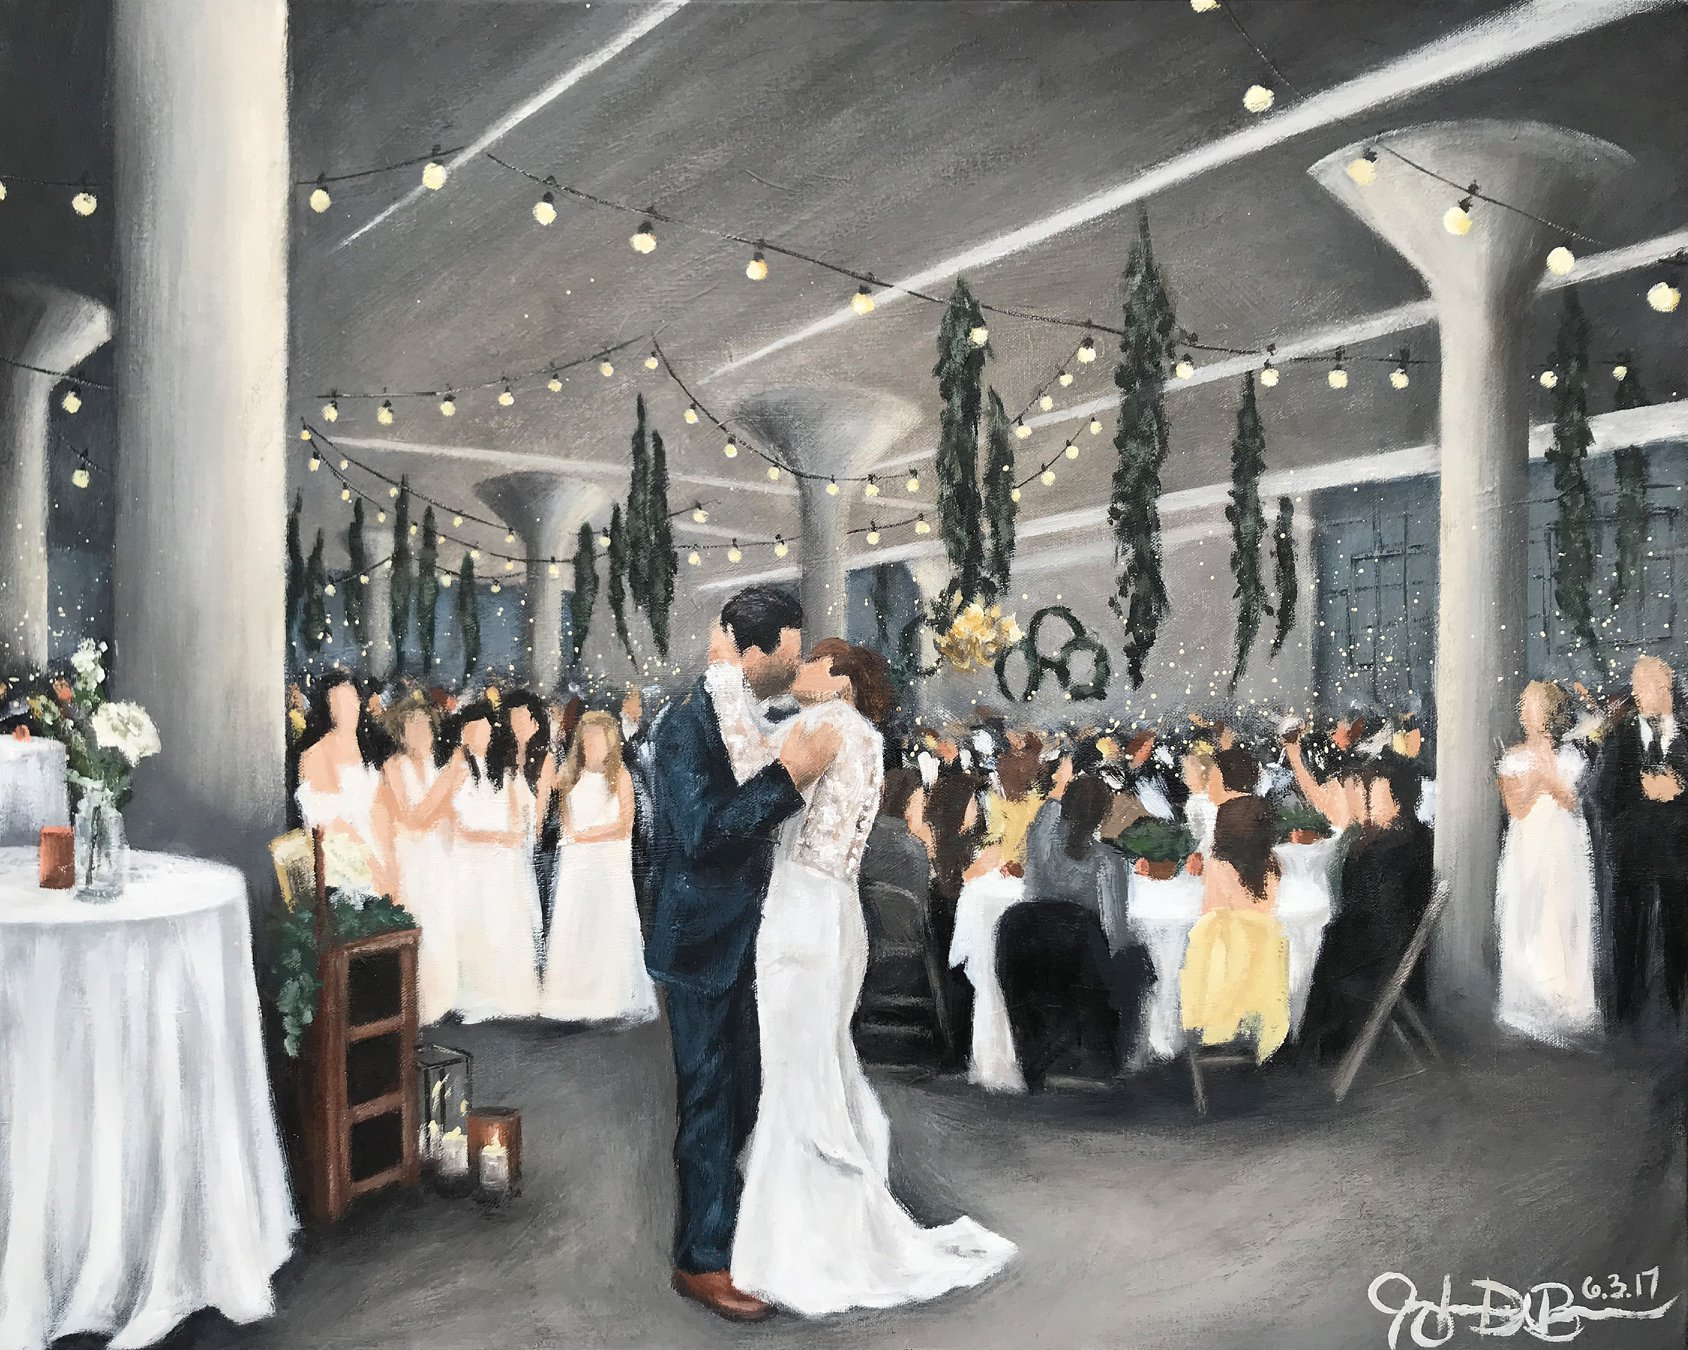 Live Wedding Painting // by Cleveland Event Painter Jacqueline DelBrocco //  The Lake Erie Building  // Lakewood, OH //24x30in acrylic on canvas // Source photo cred for bride and groom portrait: Suzuran Photography